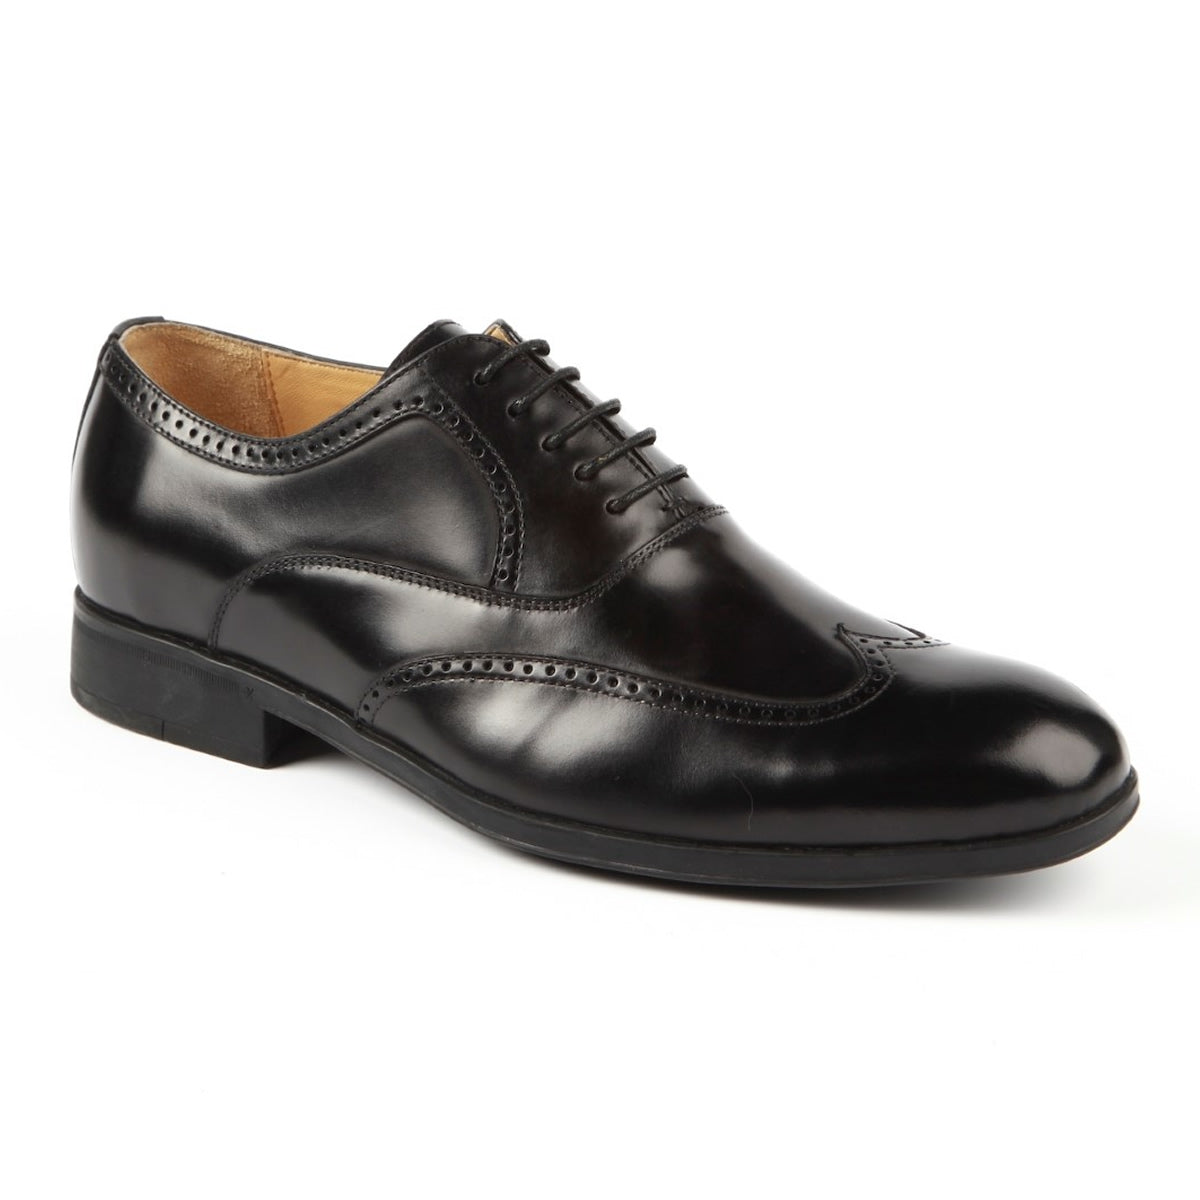 Burgos Leather Wingtip Brogue